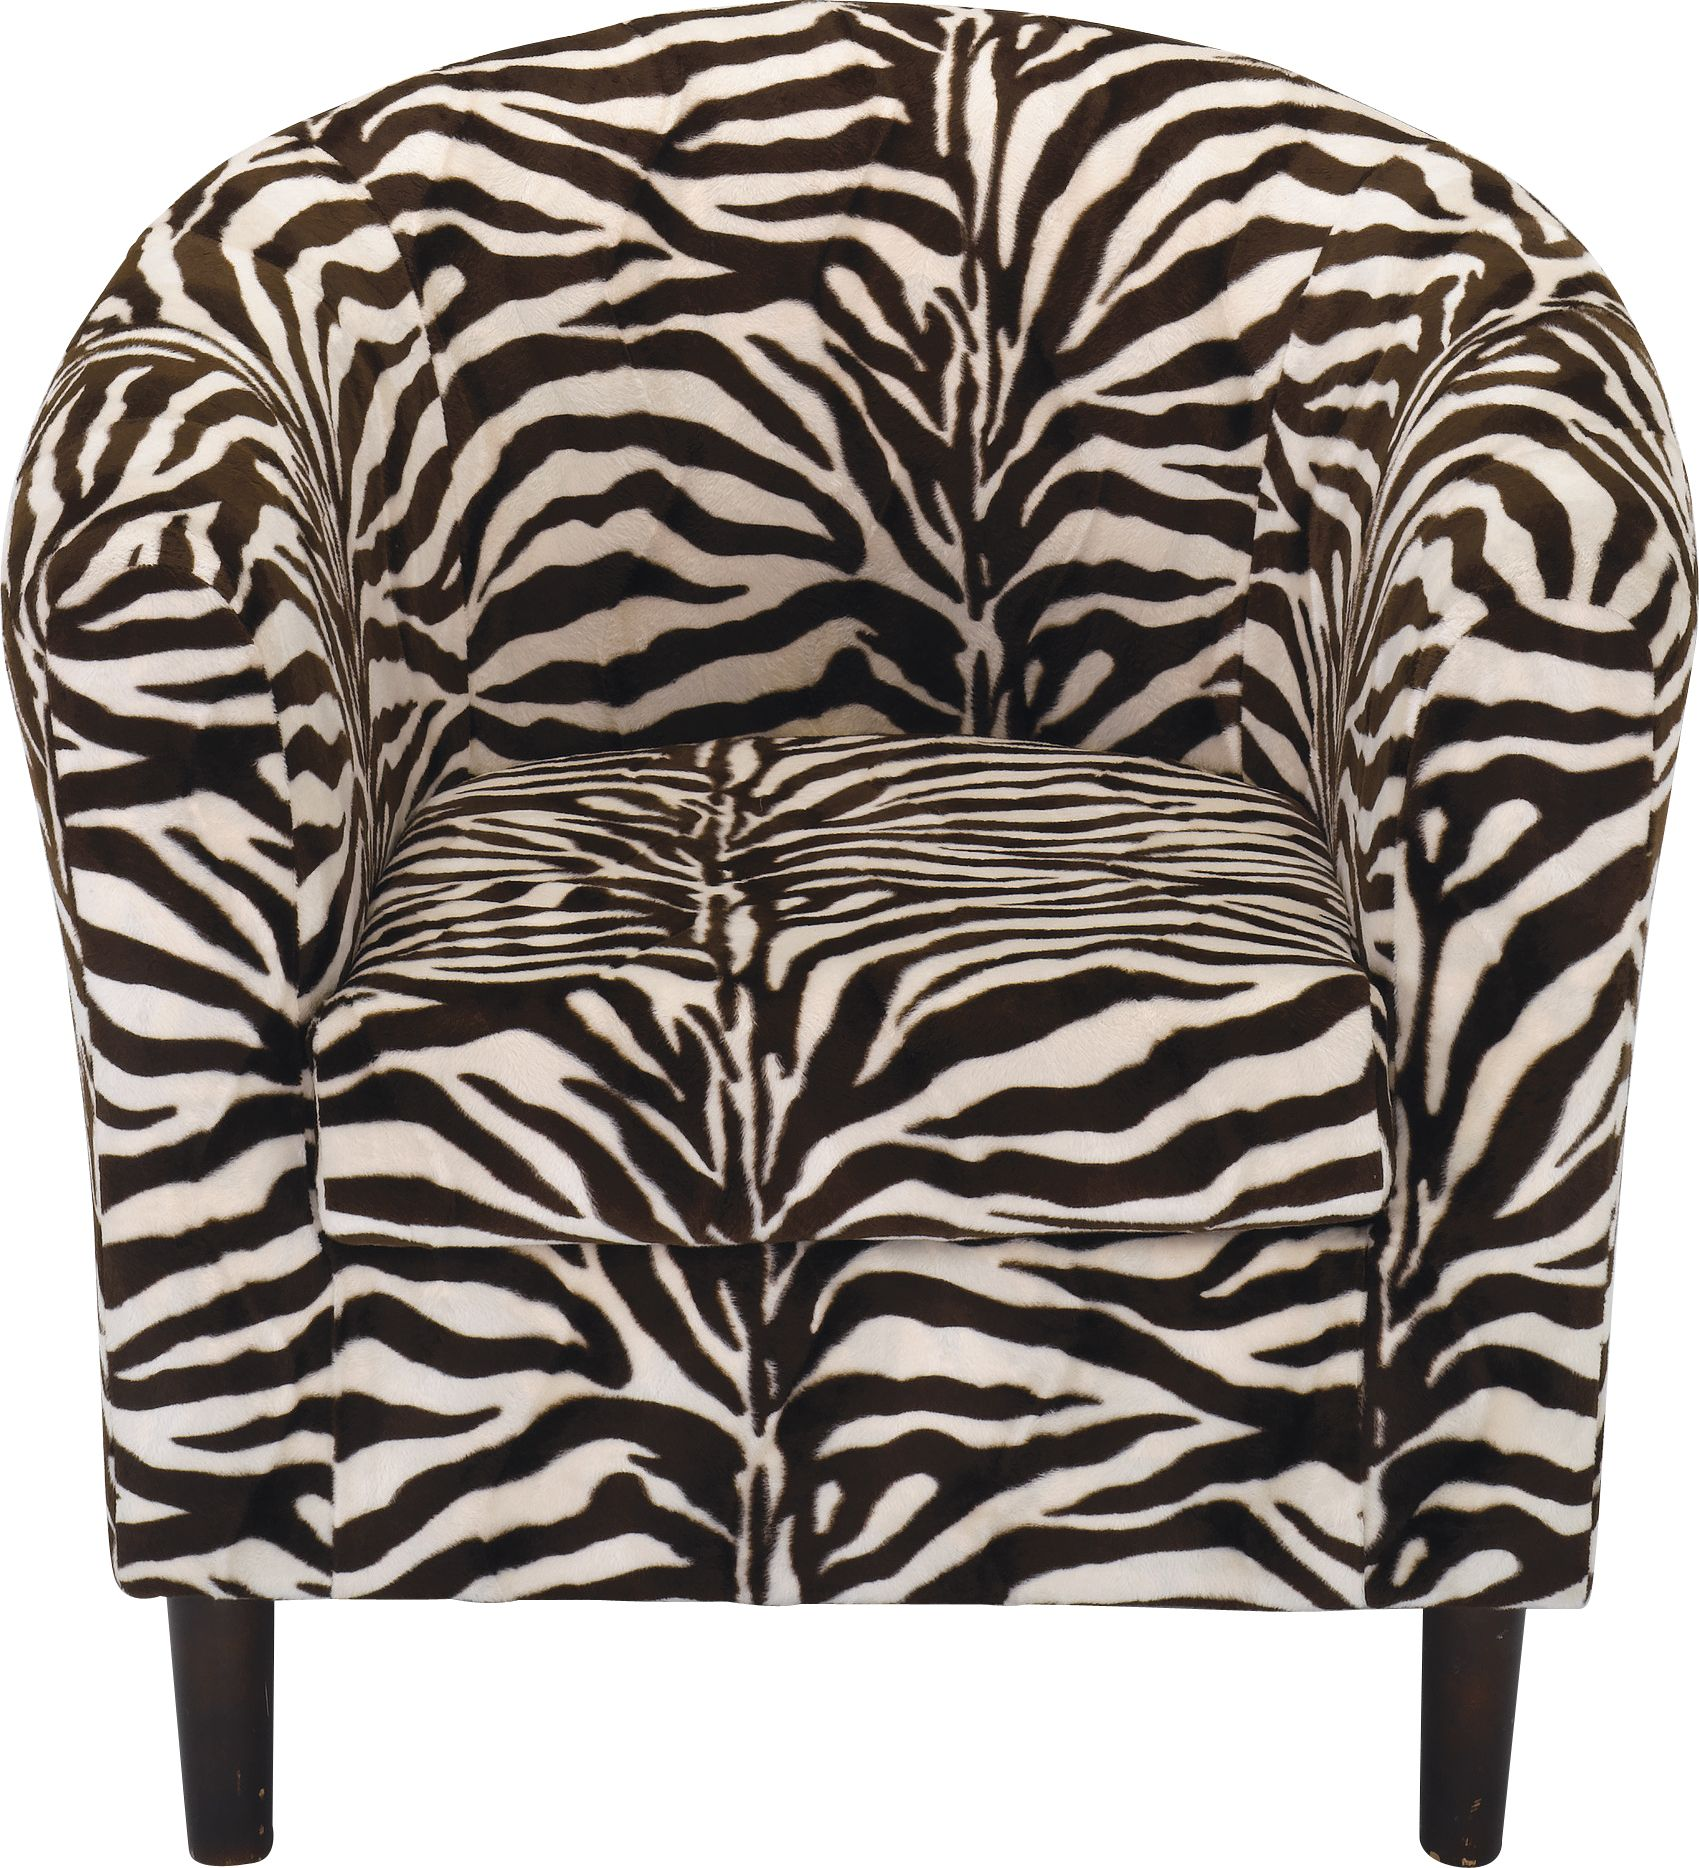 Black and white chair drawing - Drawing On The Timeless Zebra Animal Print This Black And White Tub Chair Is A